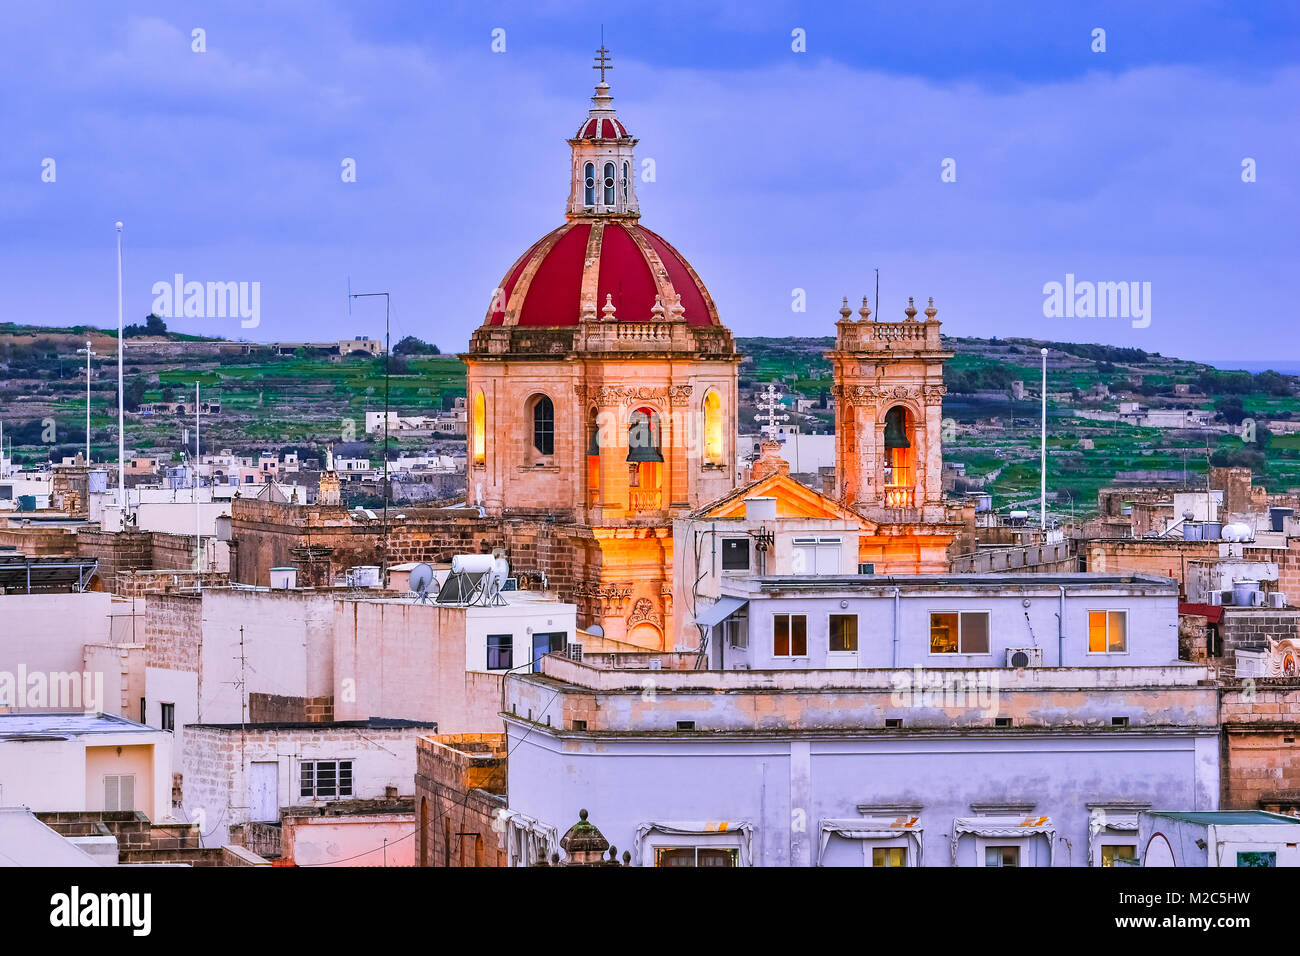 Victoria, Gozo, Malta: Overview of the city with Saint George Basilica, seen  from the citadel. - Stock Image